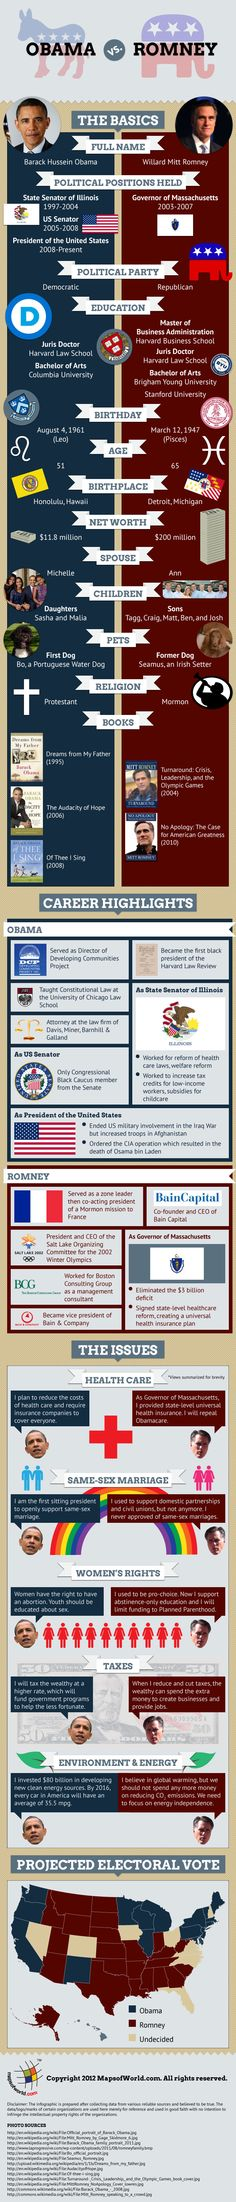 Obama vs. Romney - All you need to know.